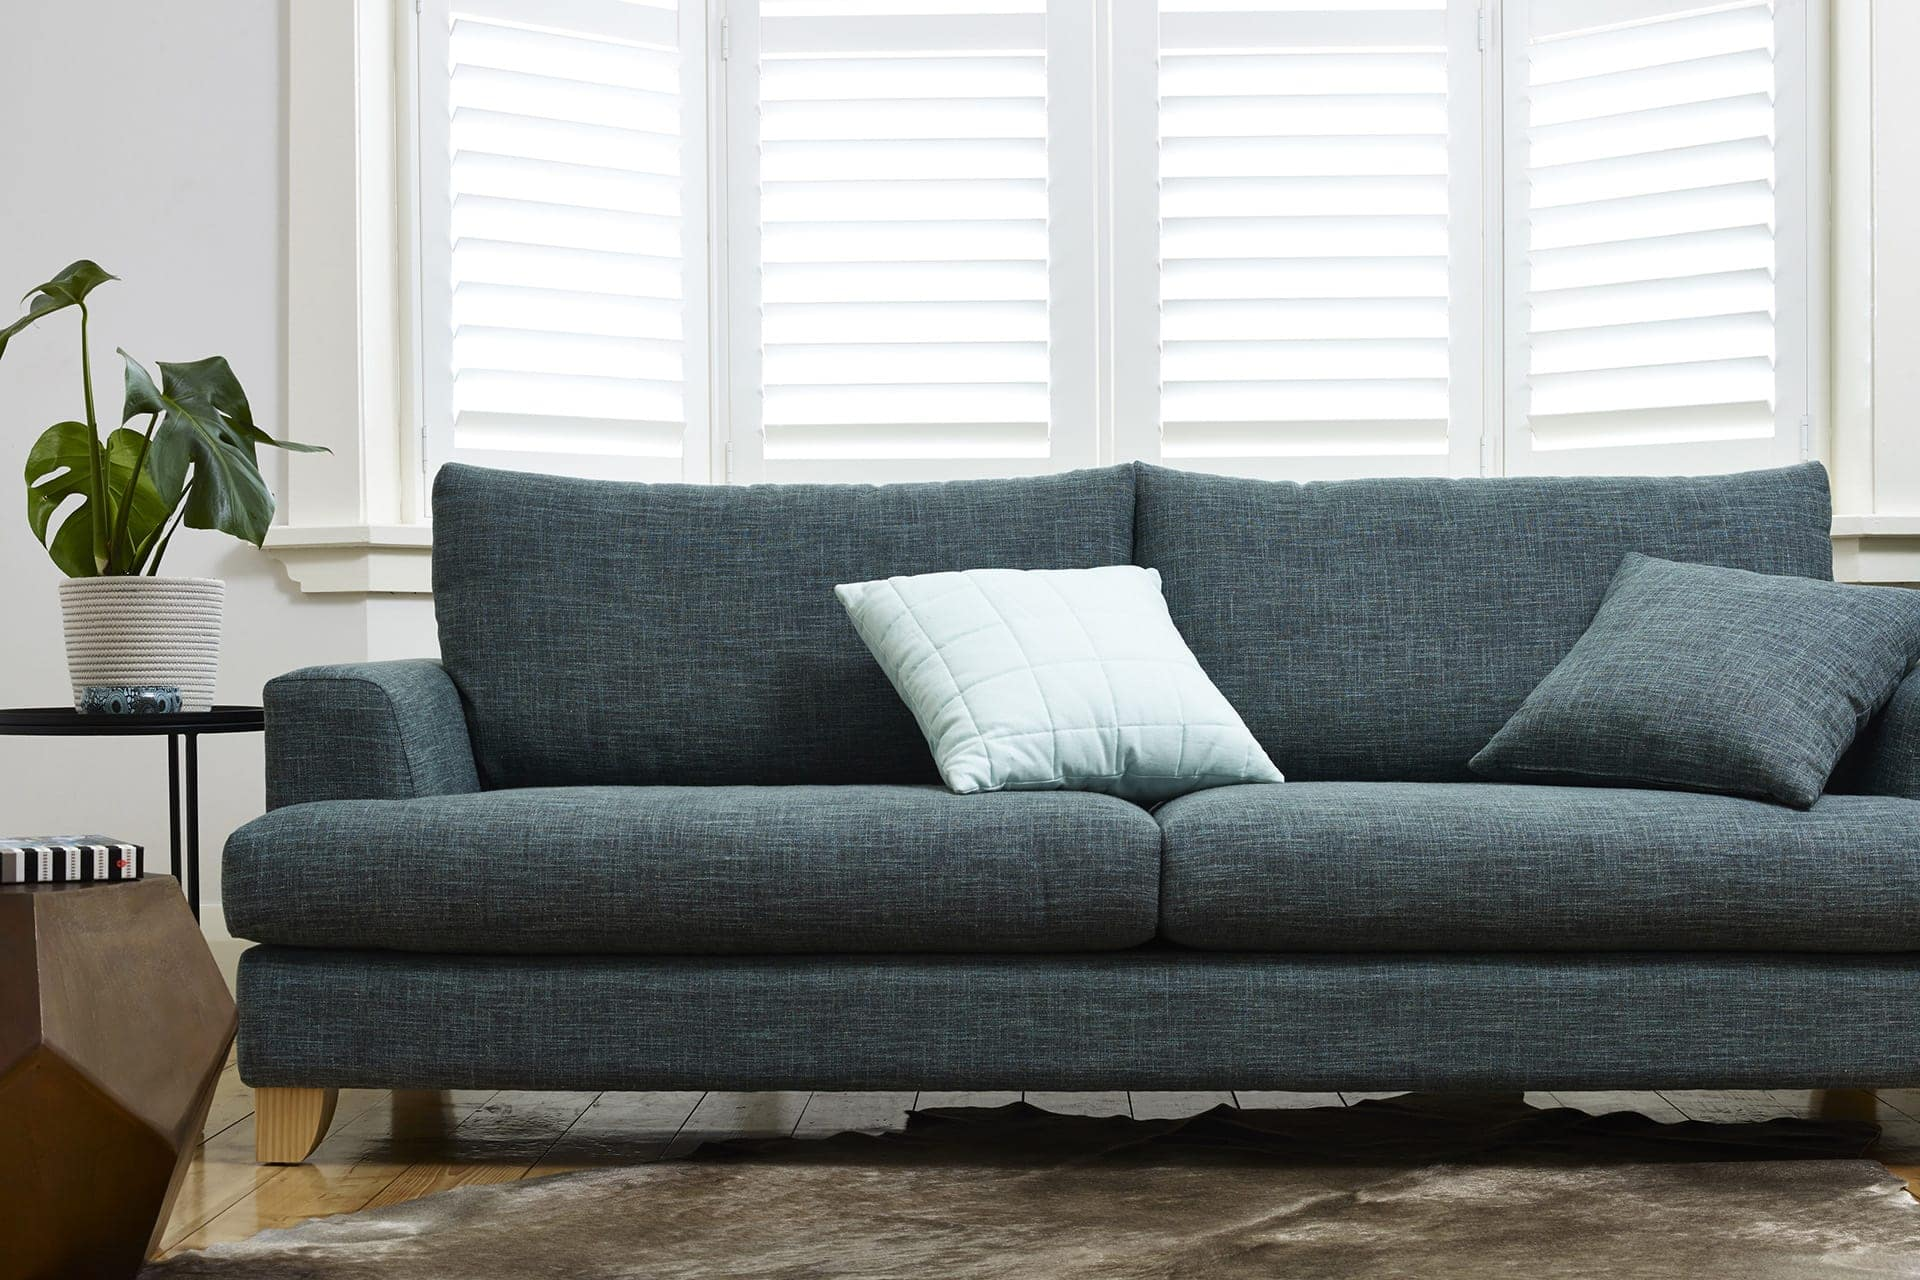 Molmic River Sofa from Berkowitz Furniture springvale homemaker centre